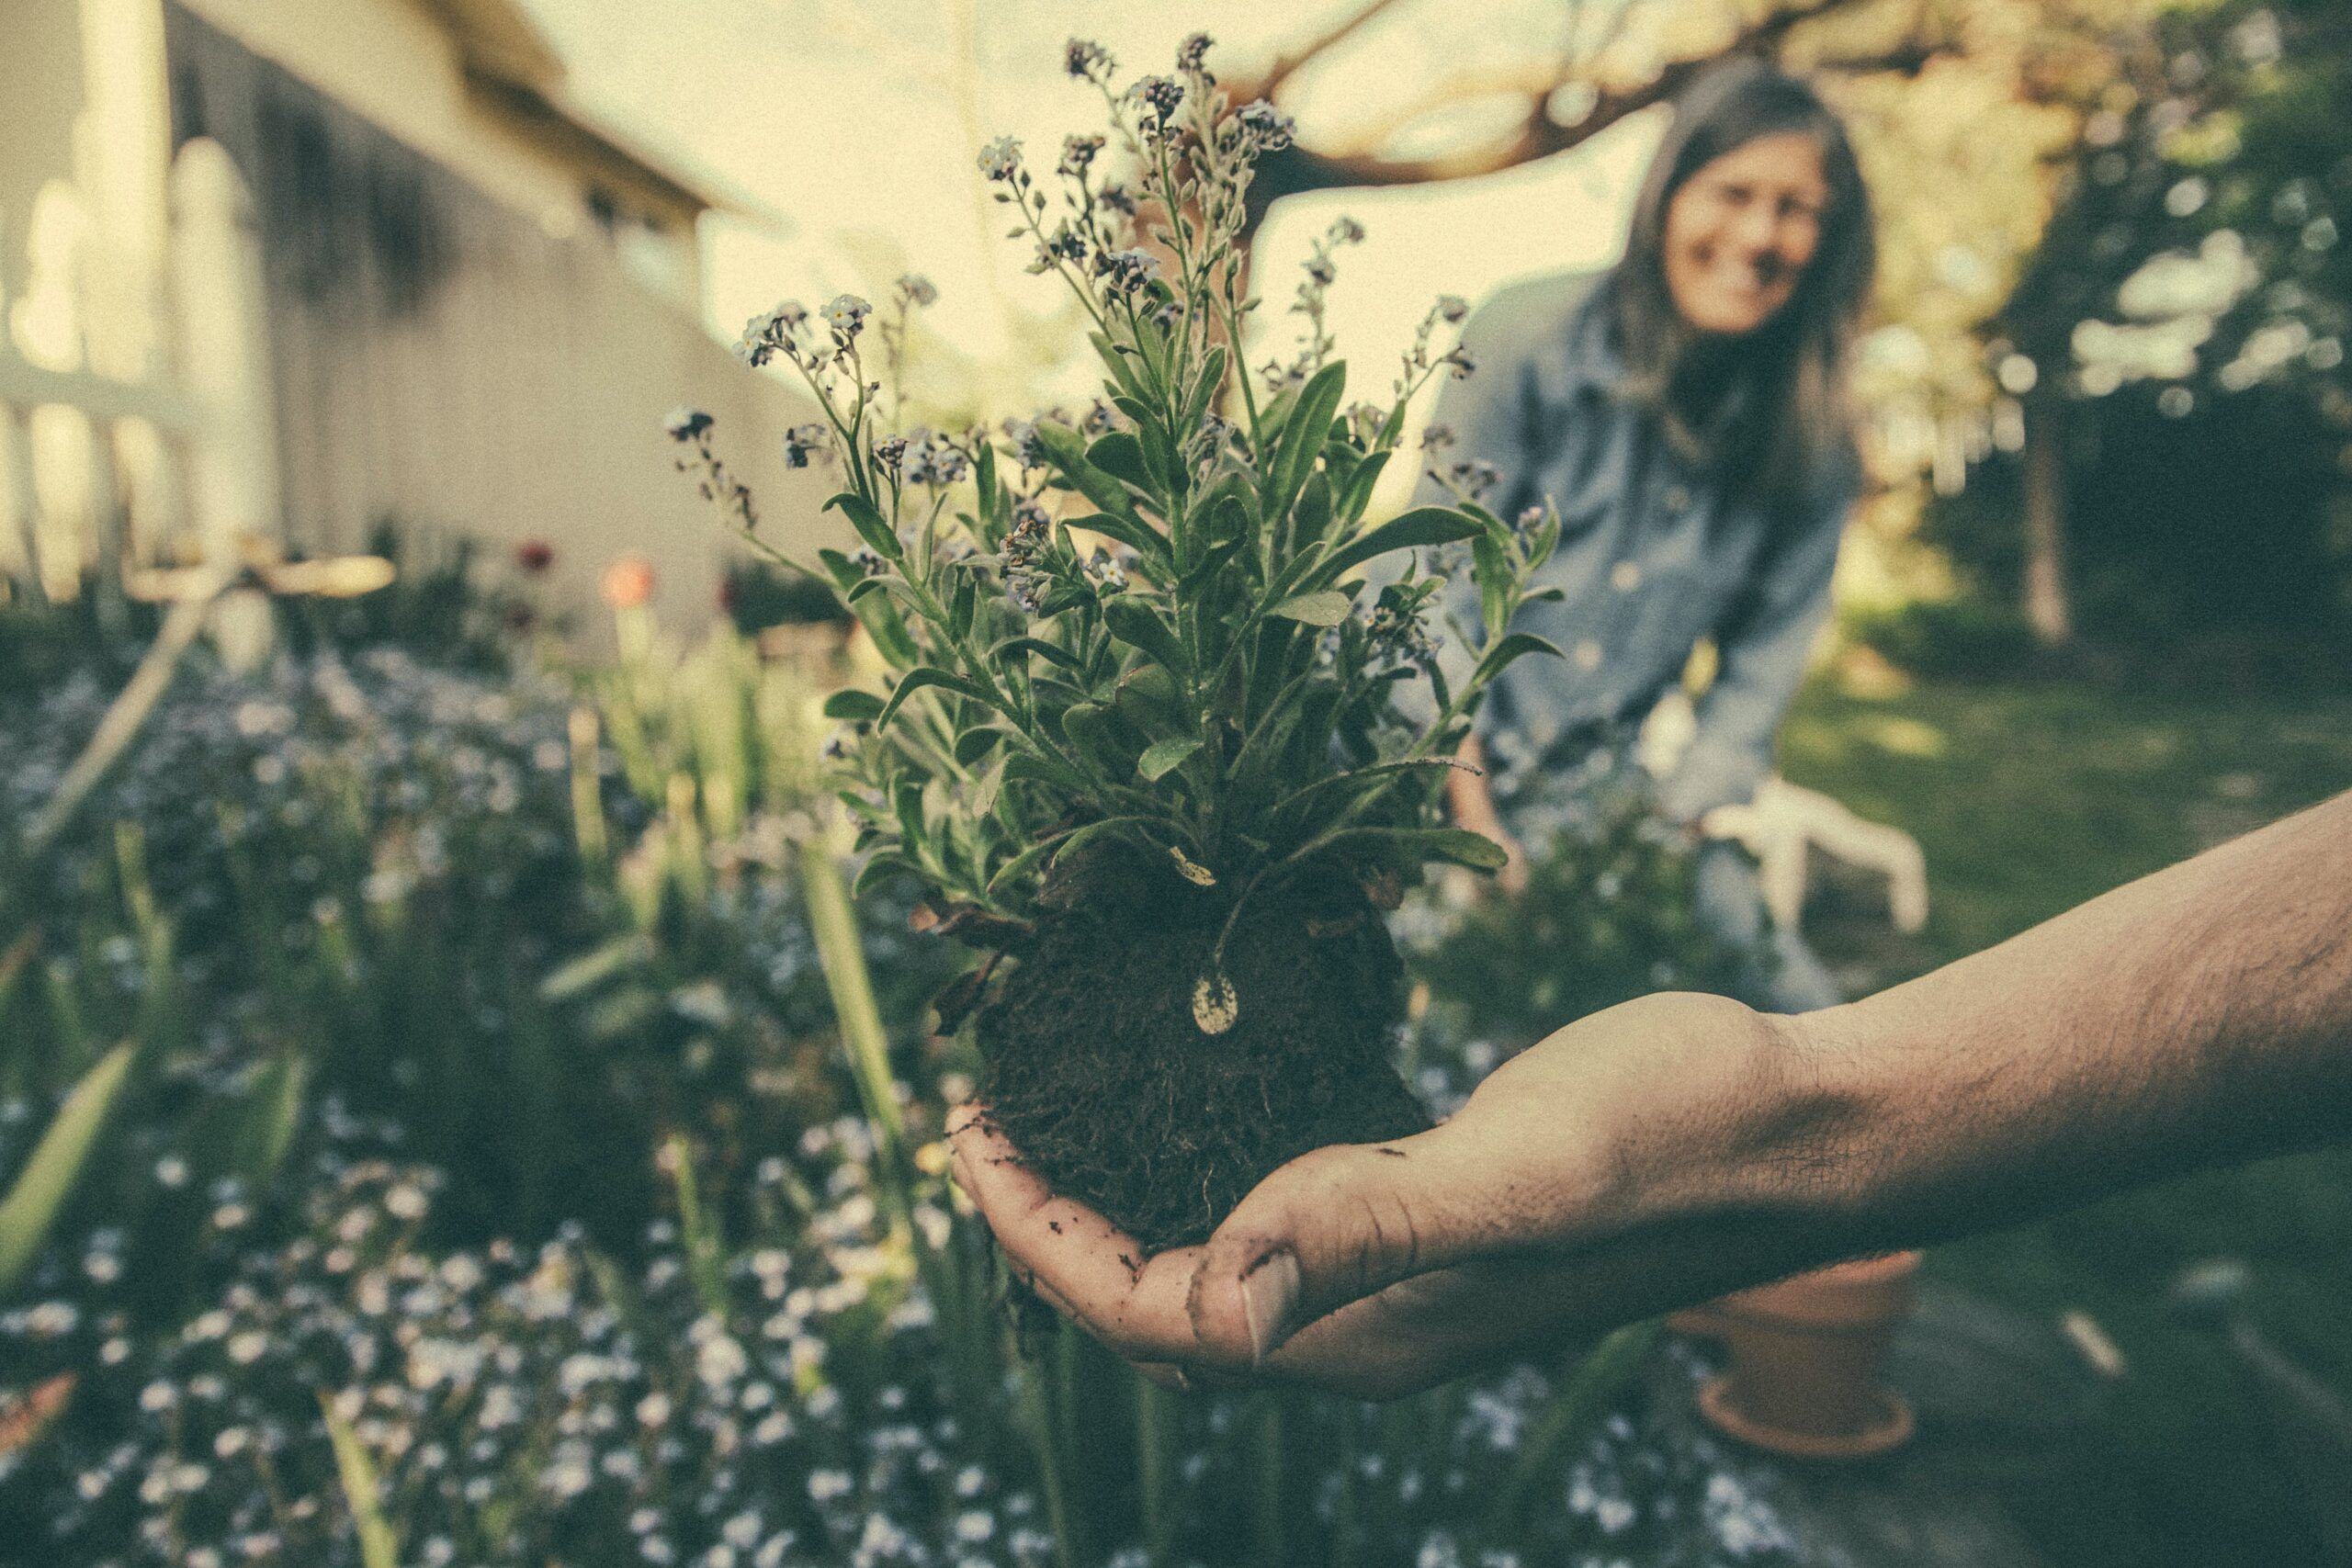 Growing Good: A Beginner's Guide to Cultivating Caring Communities